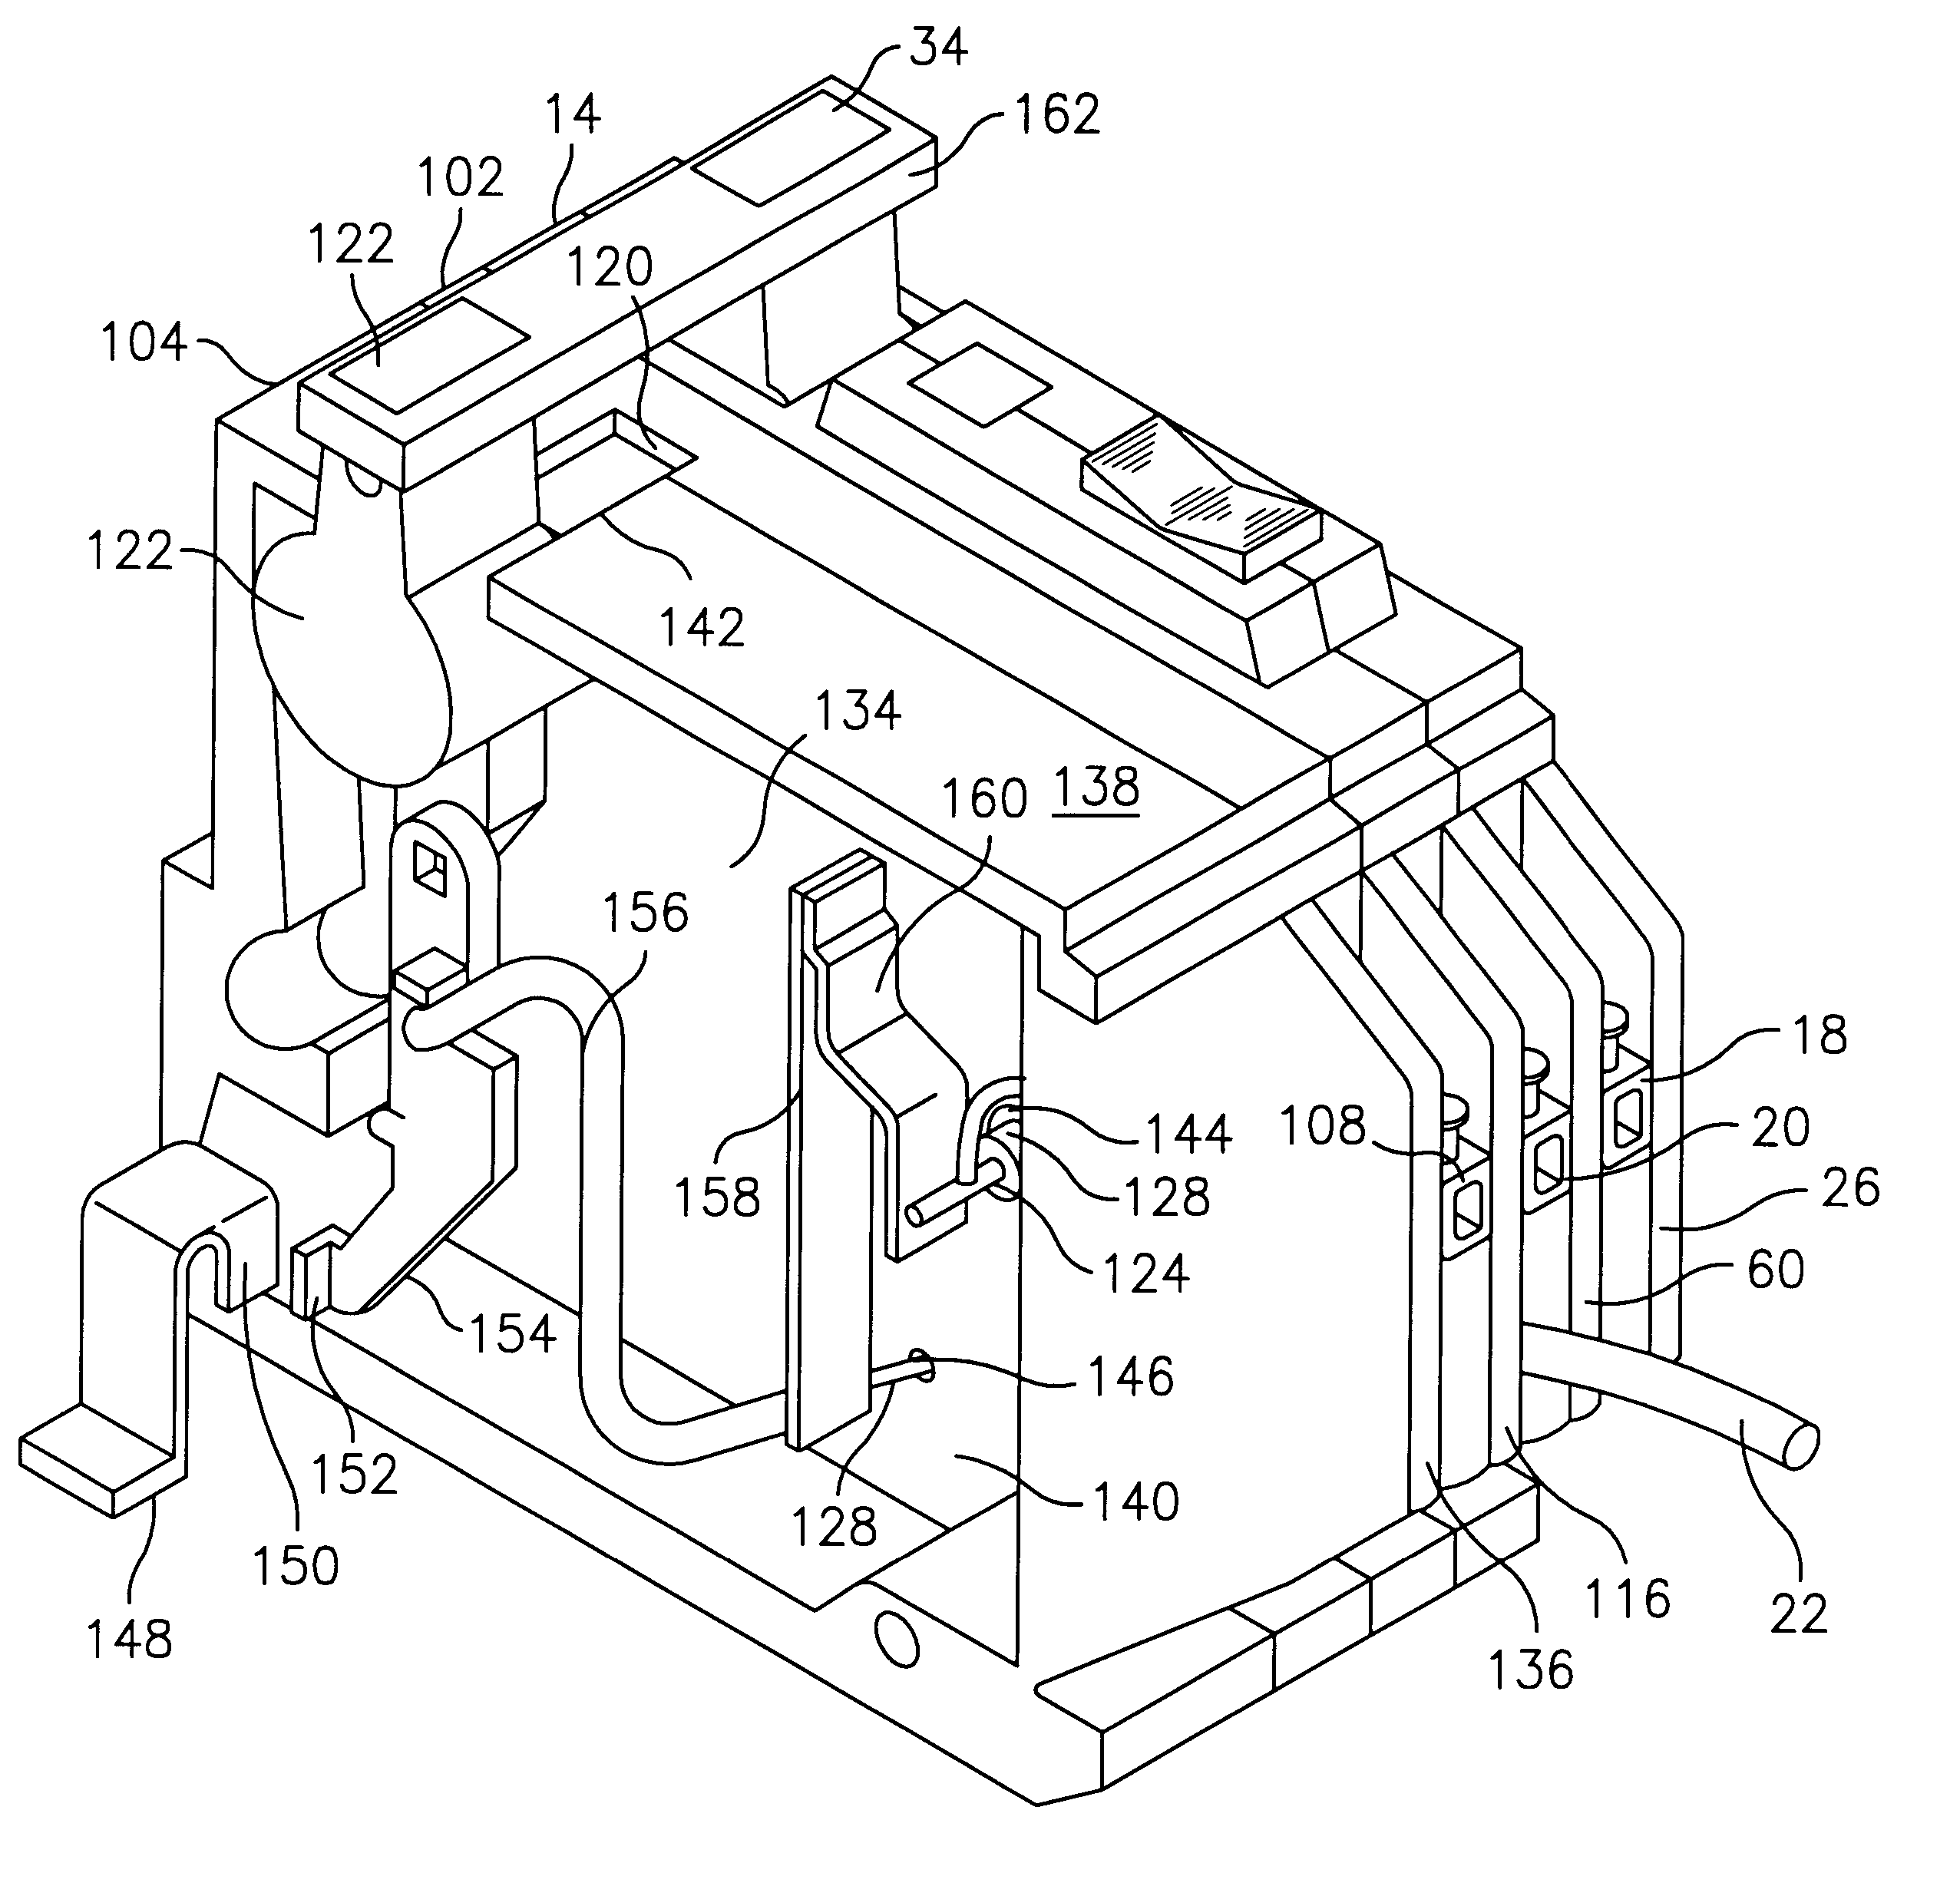 patent us6239962 arc fault circuit breaker google patents patent drawing